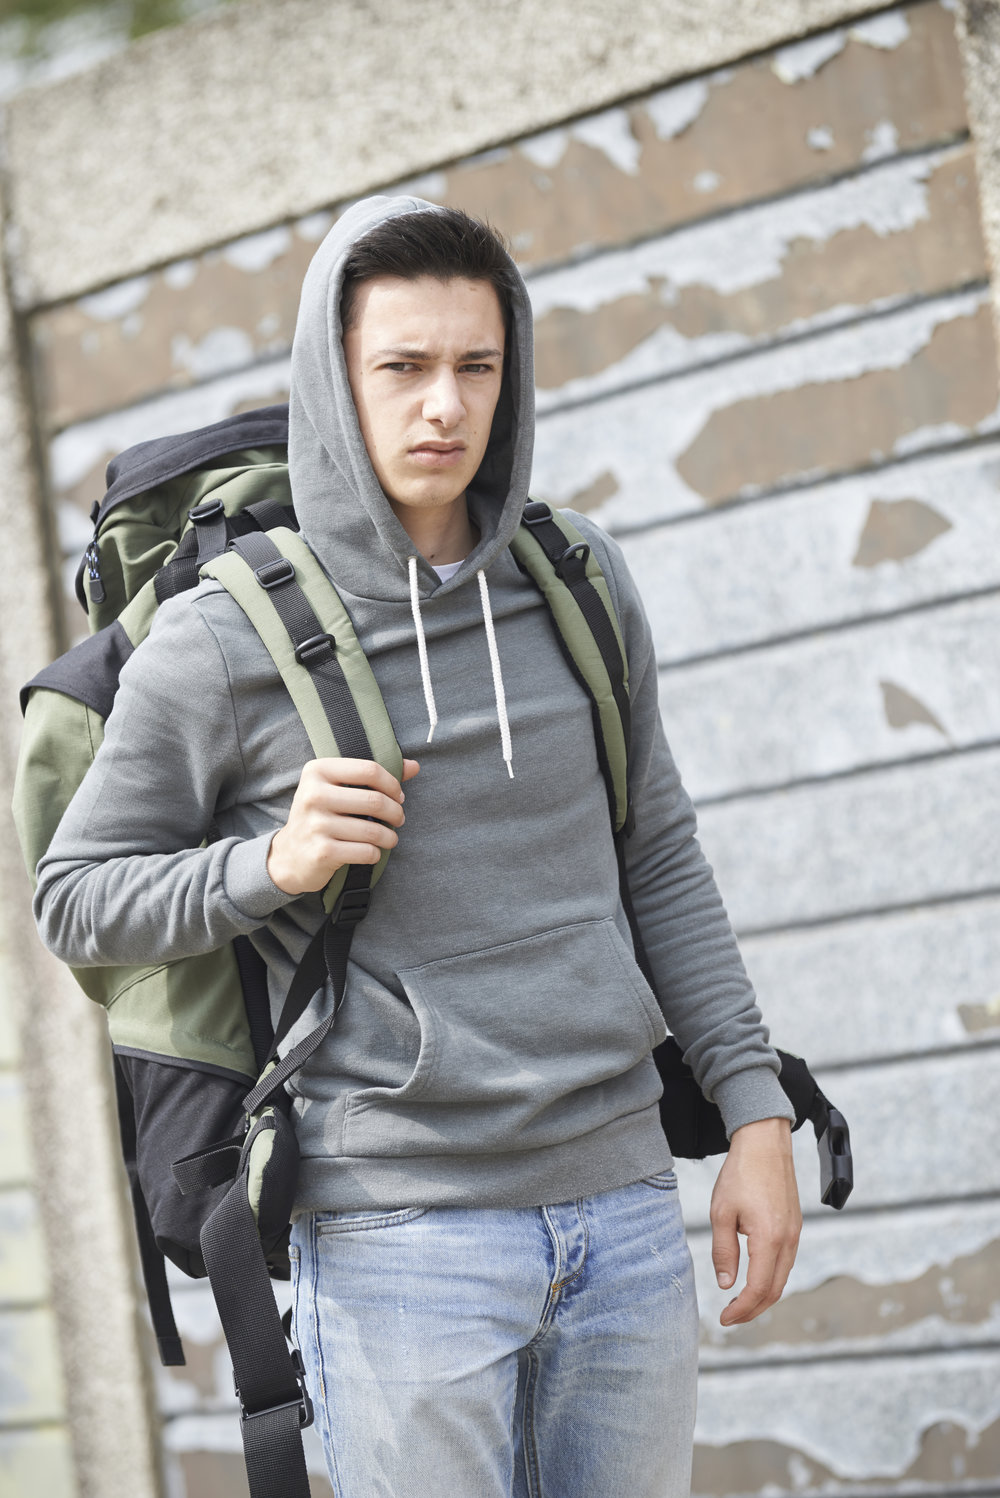 iStock-494247438 - young man with backpack.jpg